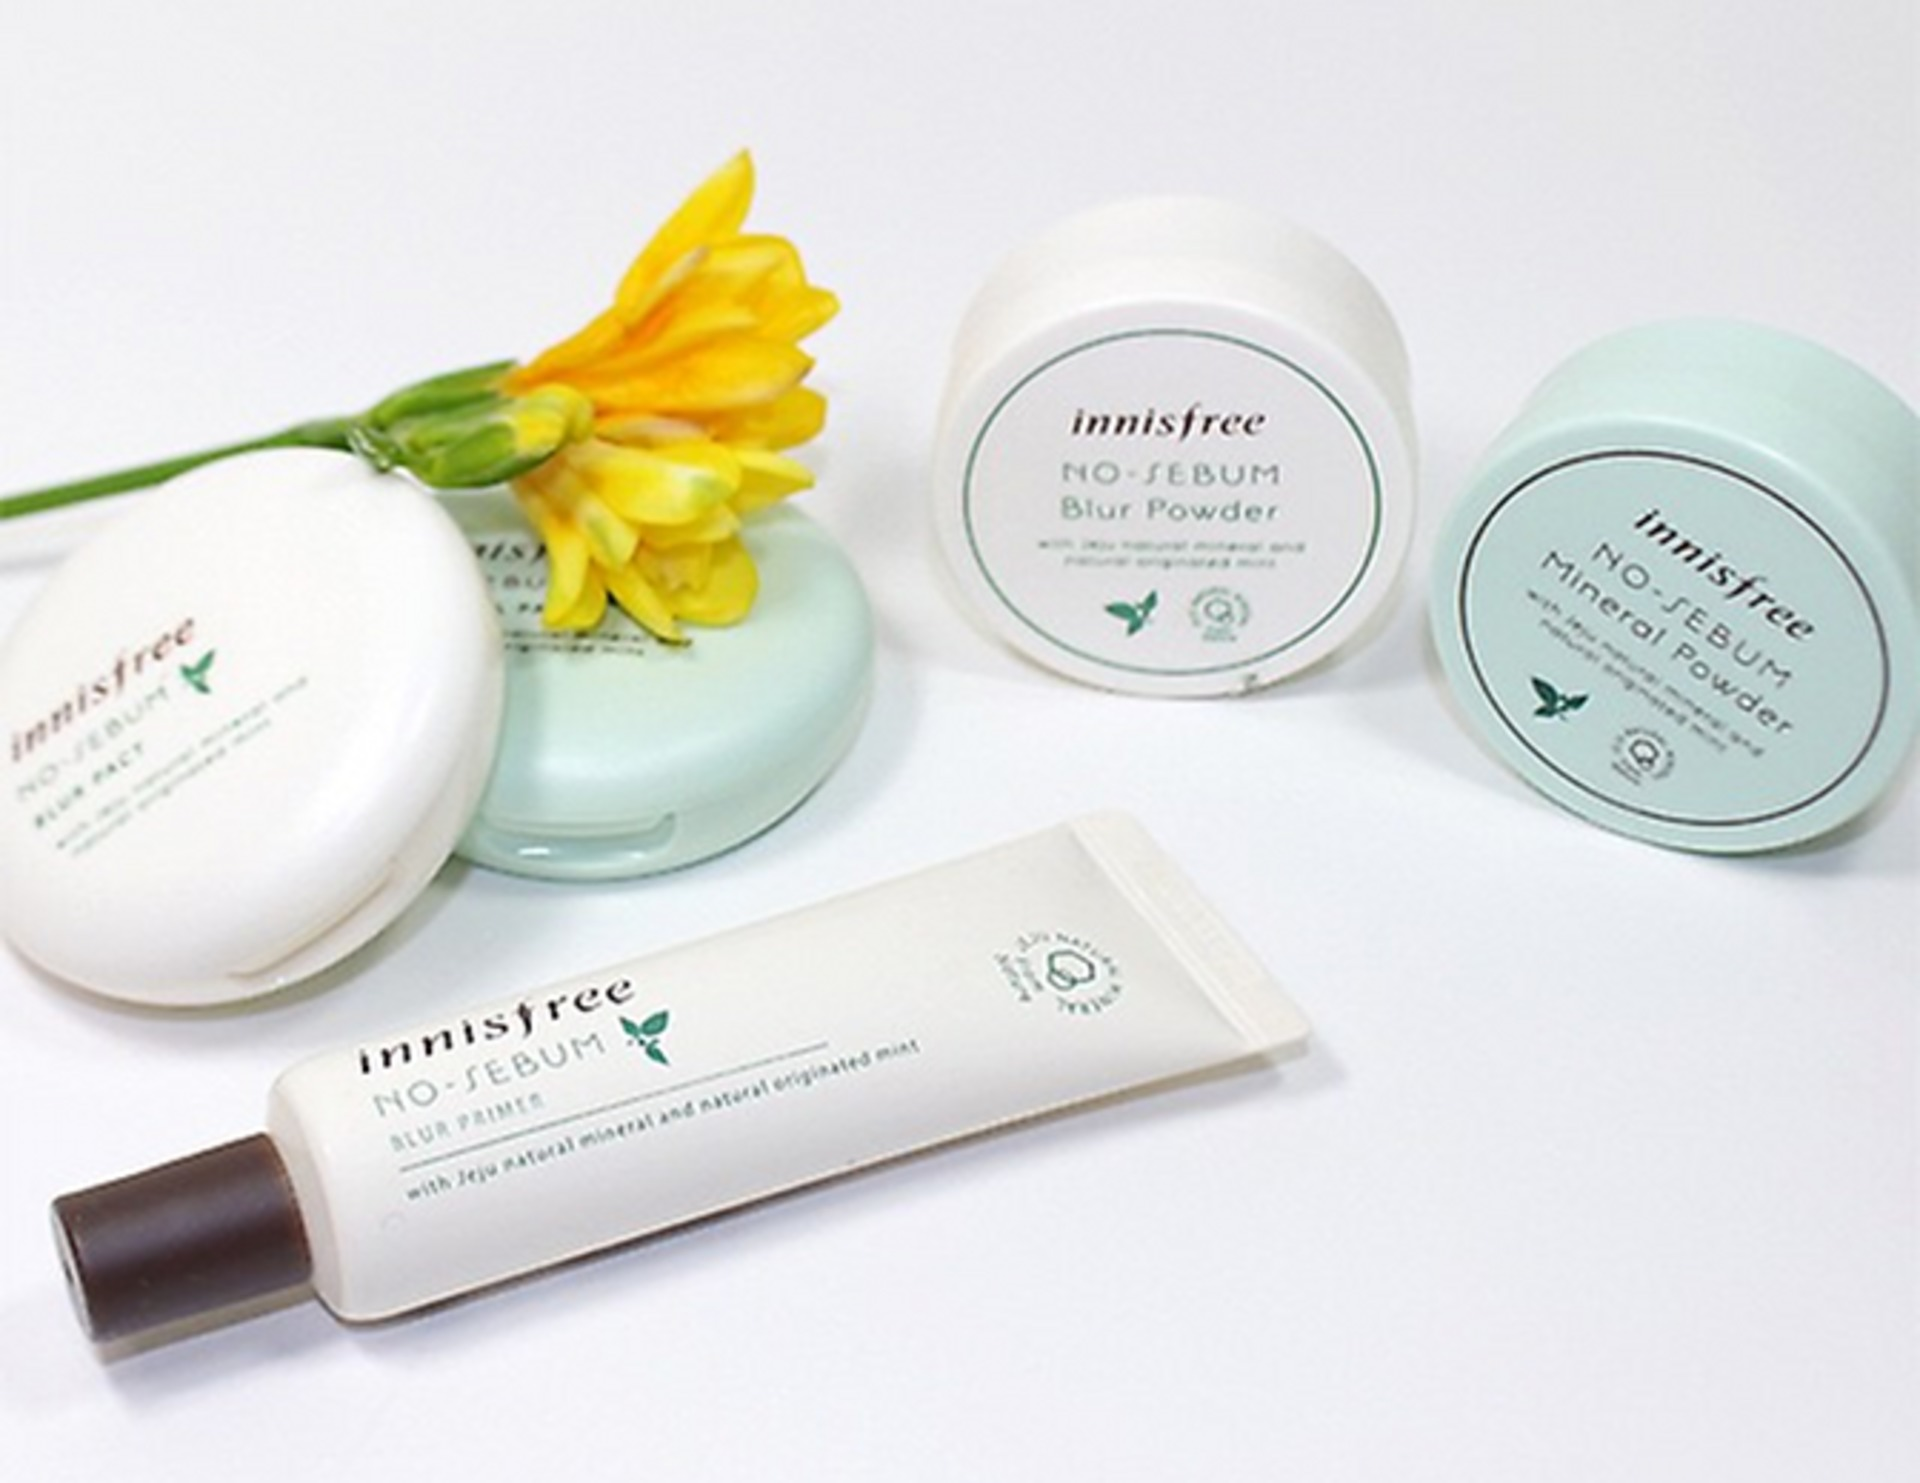 Innisfree India No Sebum Blur Line Review image